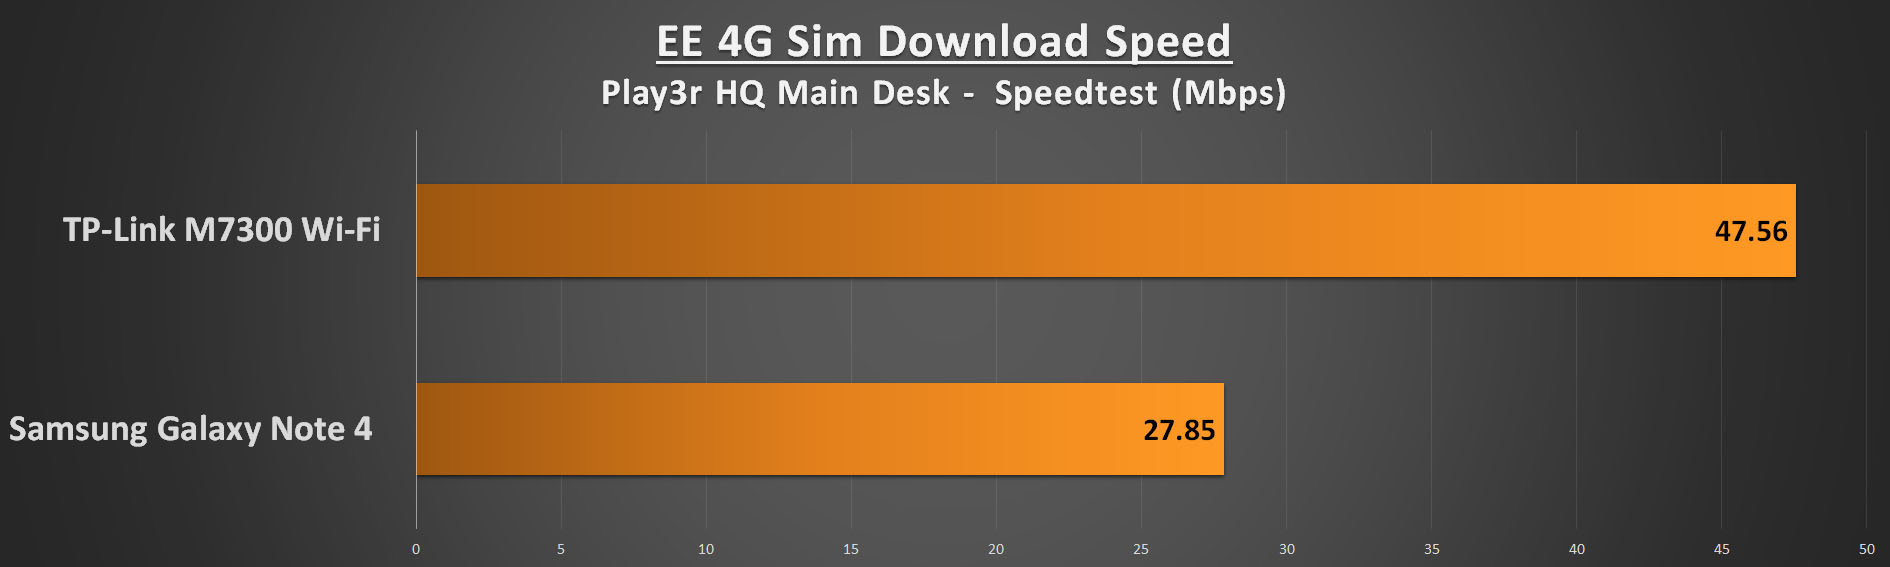 TP-Link M7300 Performance - Download Speed